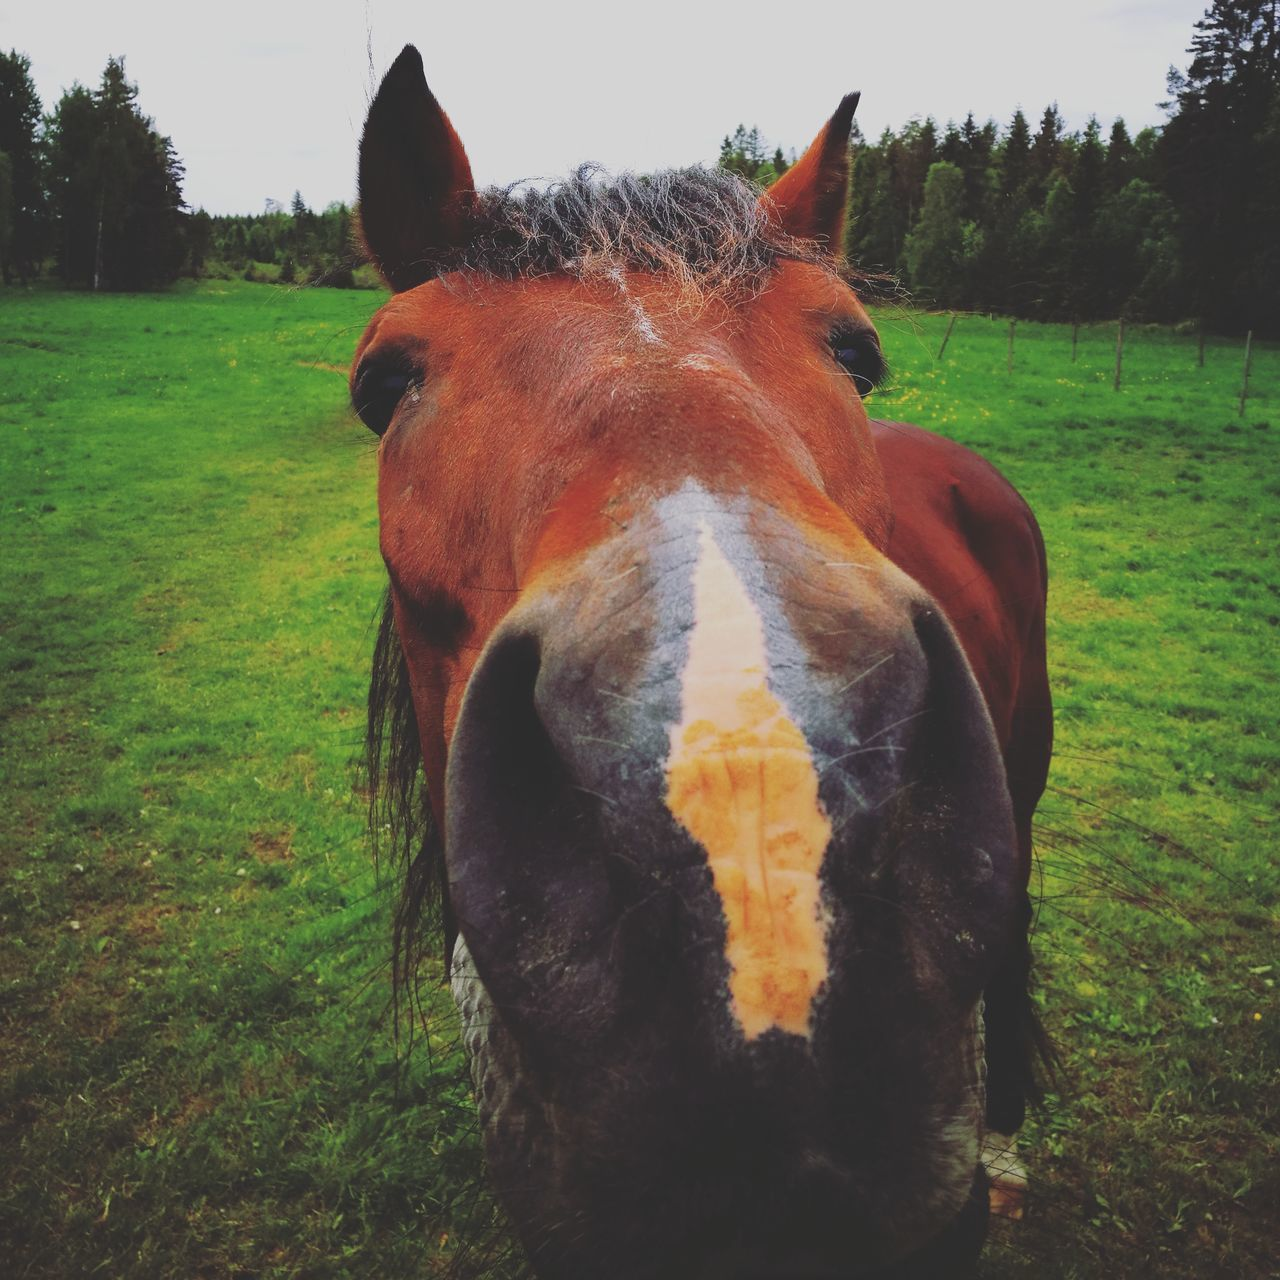 One Animal Domestic Animals Mammal Field Animal Themes Agriculture Horse Close-up